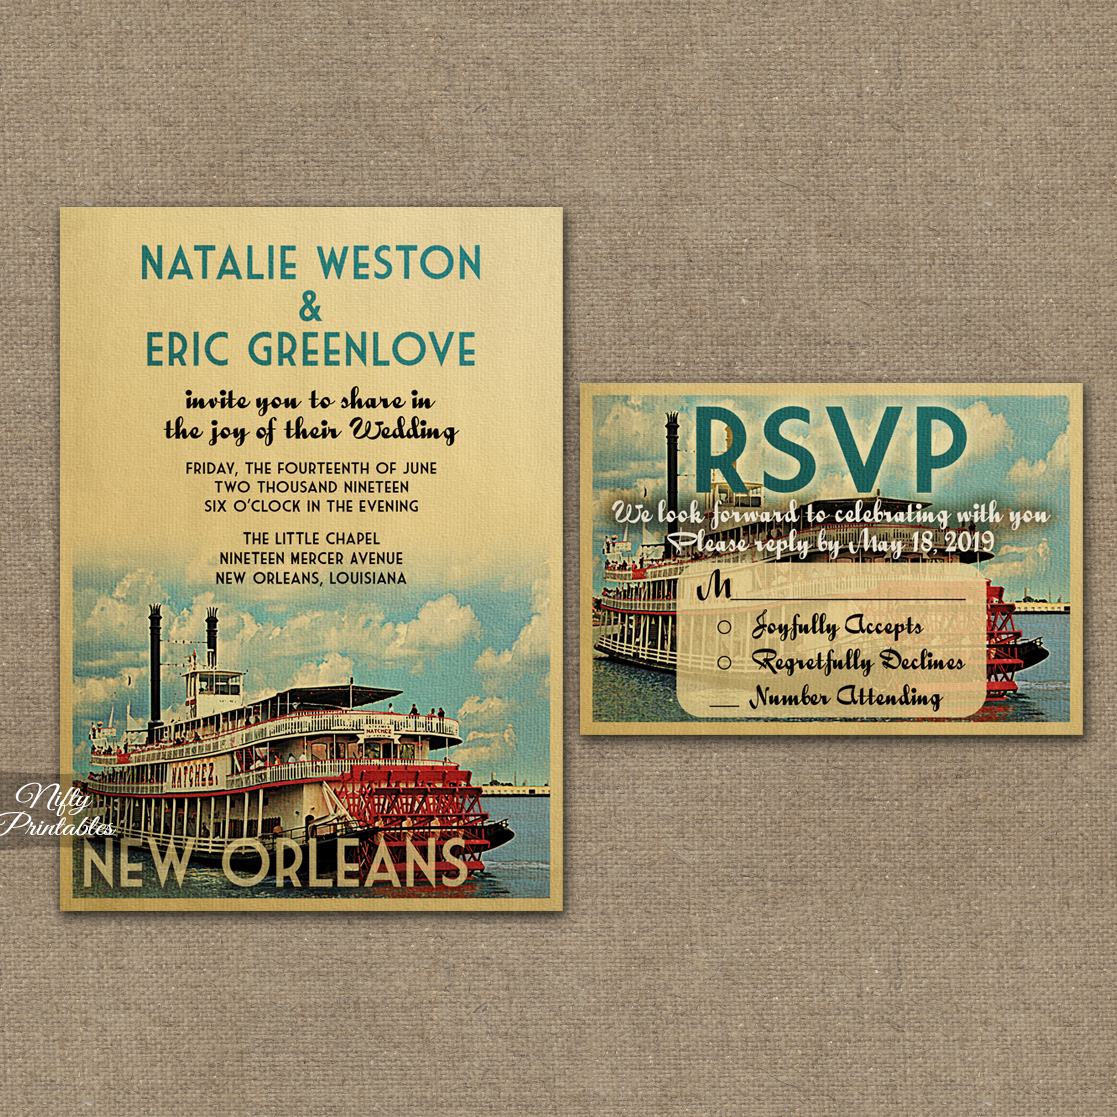 New Orleans Wedding Invitations is one of our best ideas you might choose for invitation design